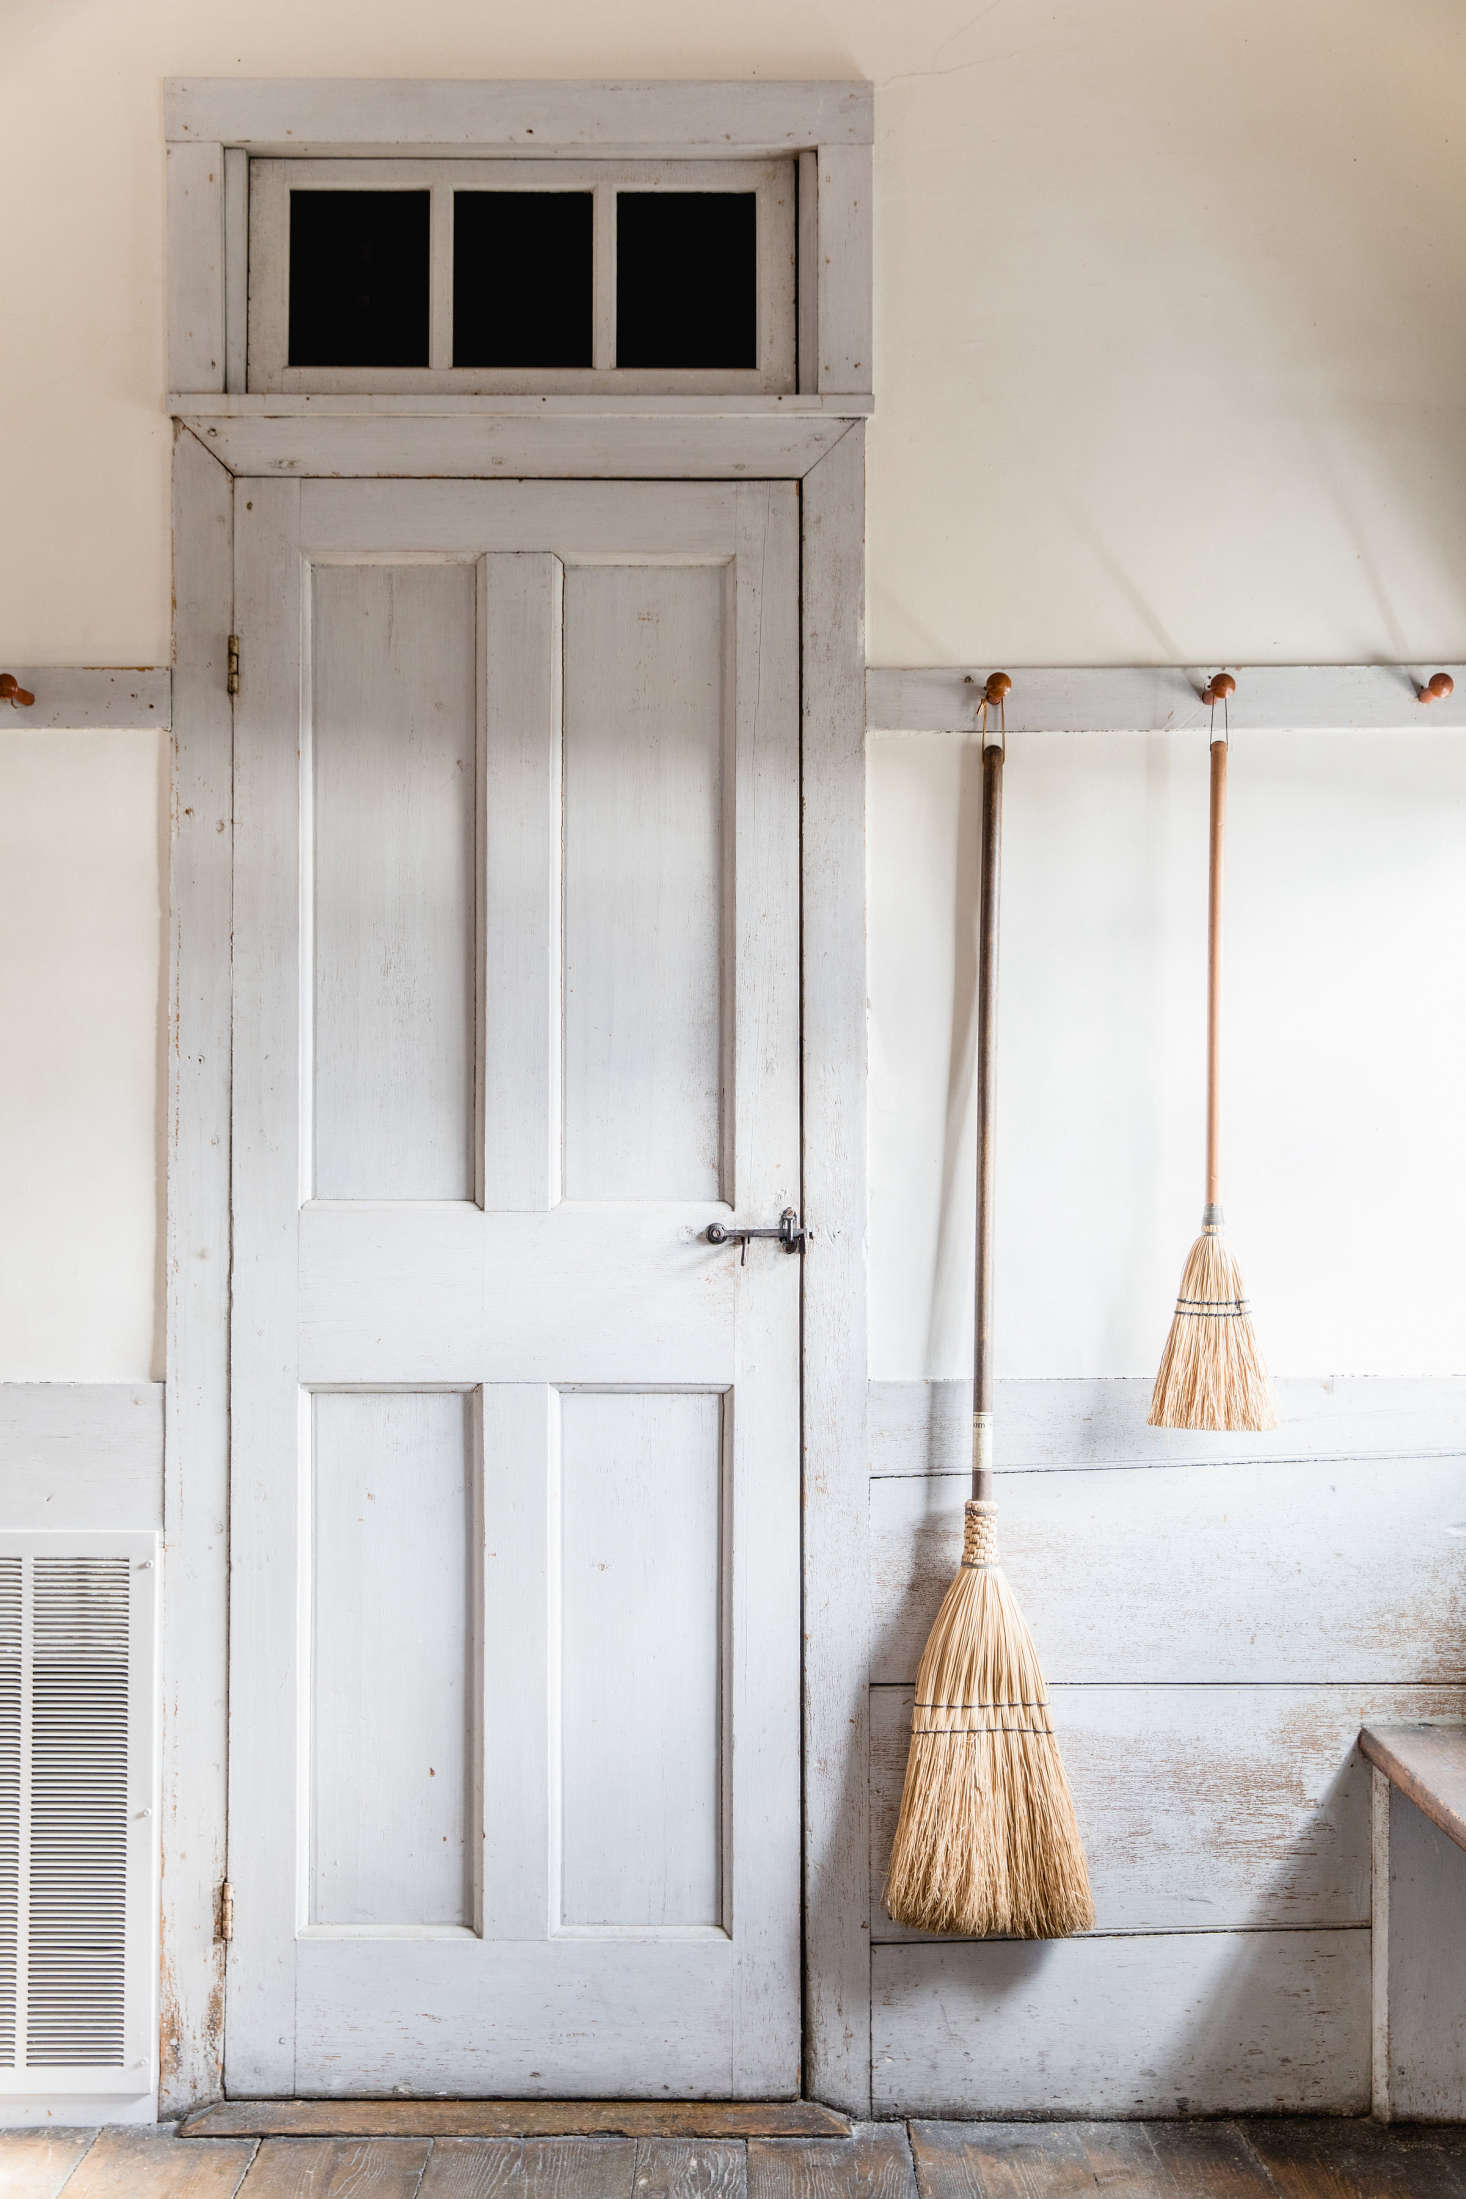 Peg rails keeps brooms at the ready in a Shaker schoolhouse. See In the Dwelling House:  Design Ideas to Steal from the Shakers.